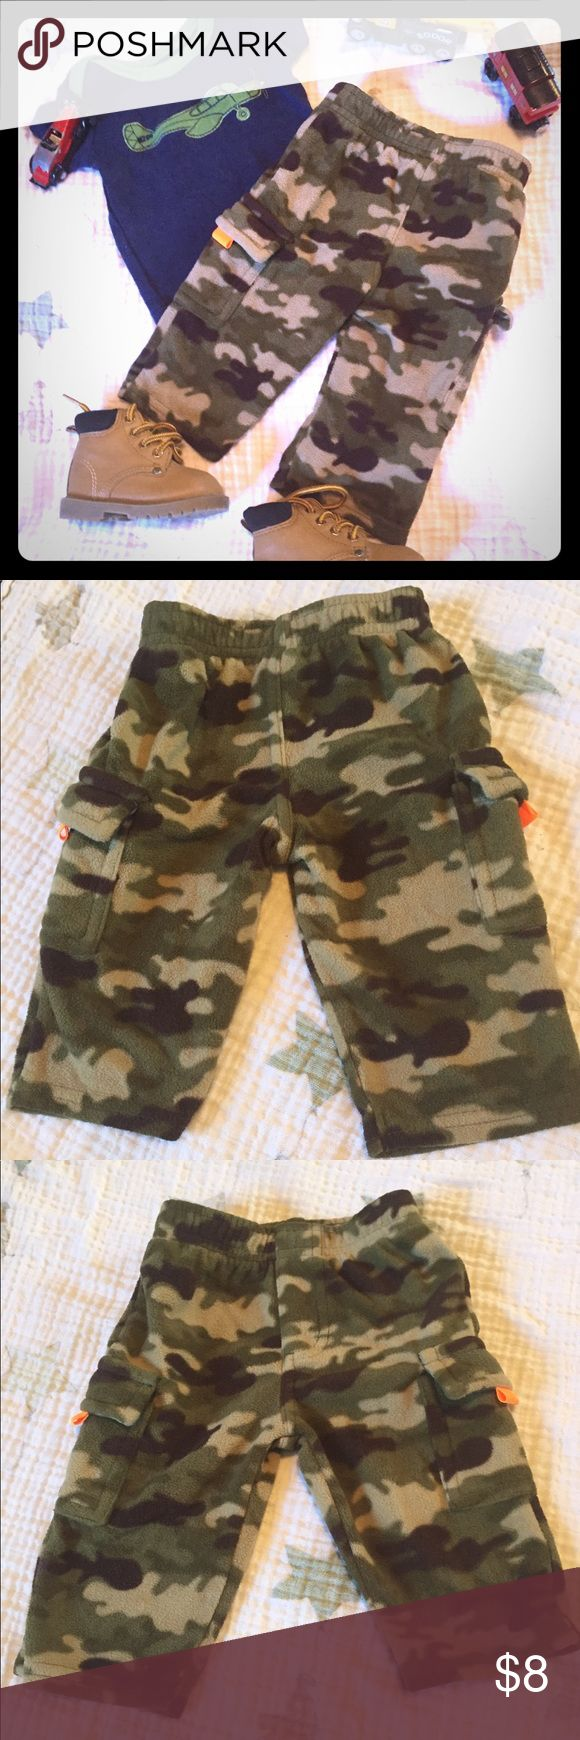 Garanimals 0-3 month fleece camouflage pants 👖 Keep your little adventure warm and cozy in these fleece pants! They are camouflage and have a pocket on each leg with an orange tab. They are green camouflage and would be easy to pair with most colors and a pair of boots to get your little stomping around.  Bundle for a special offer! Garanimals Bottoms Sweatpants & Joggers